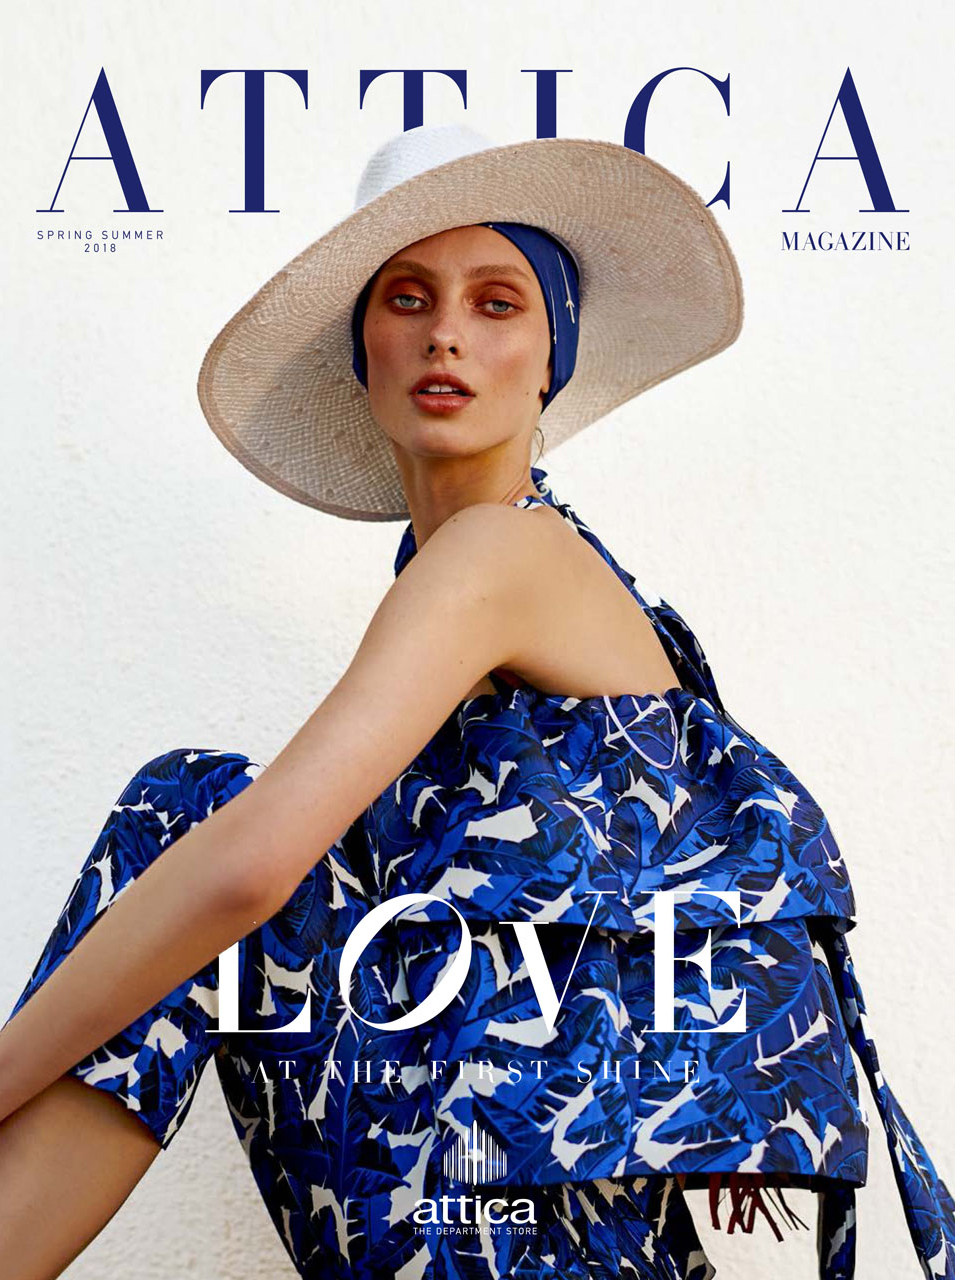 Vika Dunets on the cover of Attica Mag.